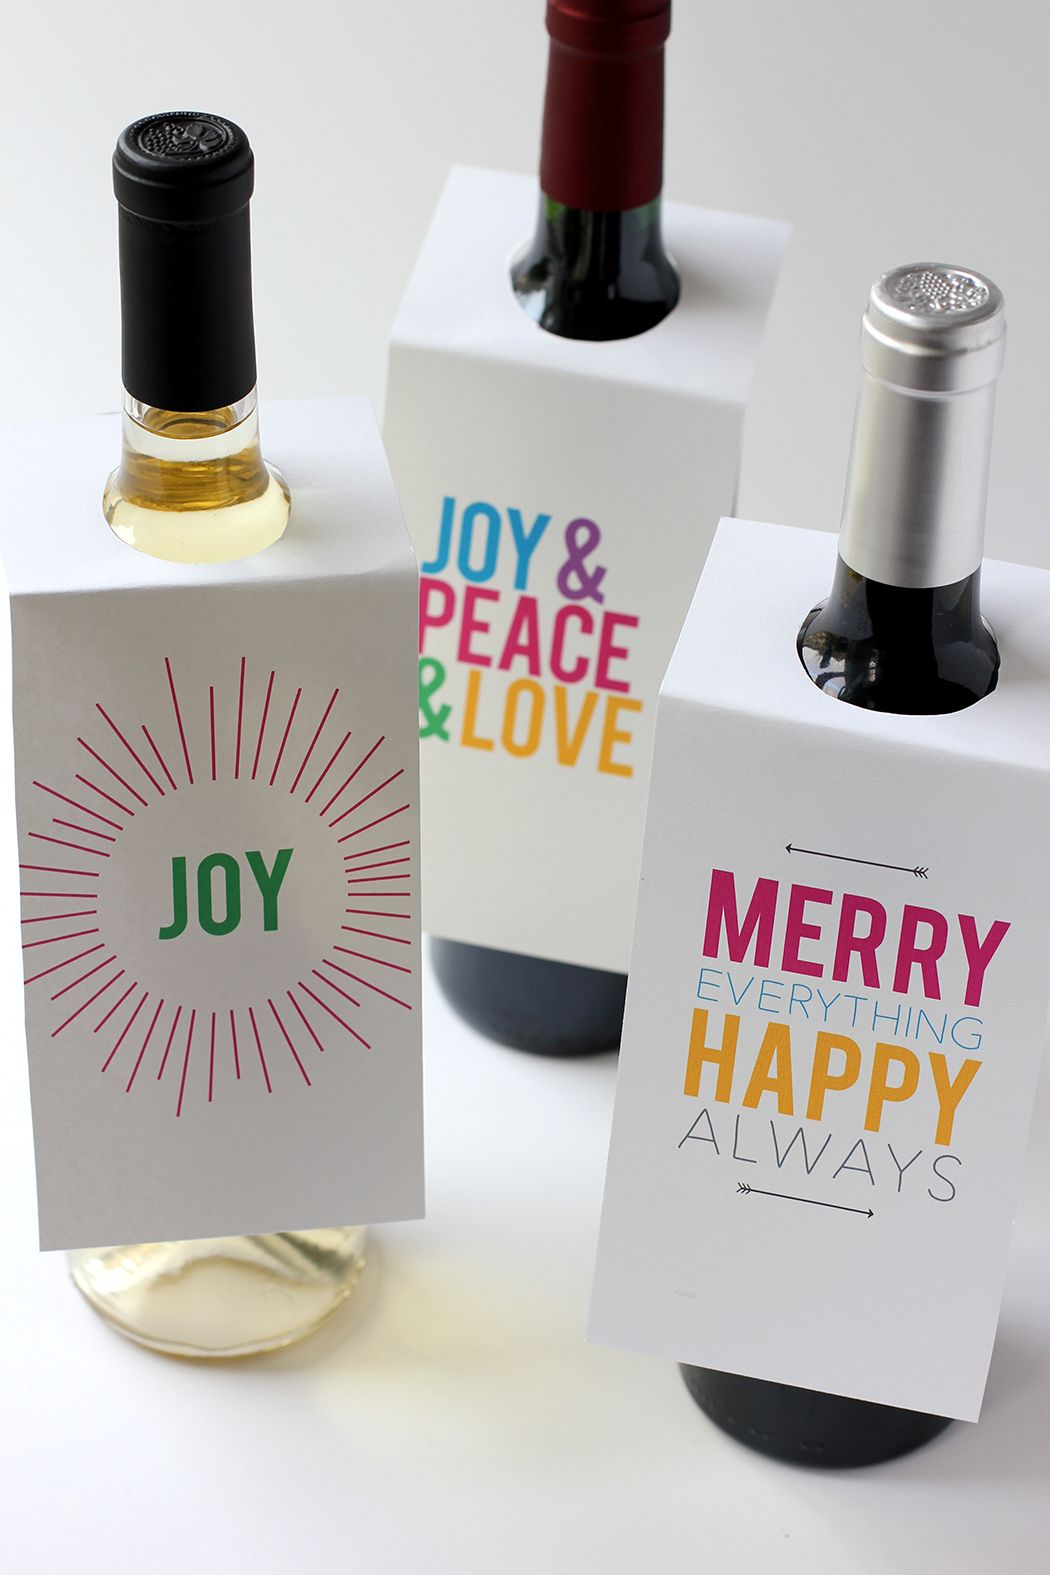 photo about Printable Wine Bottle Tags named Family vacation Wine Bottle Present Tags Cost-free Printable Reward tags